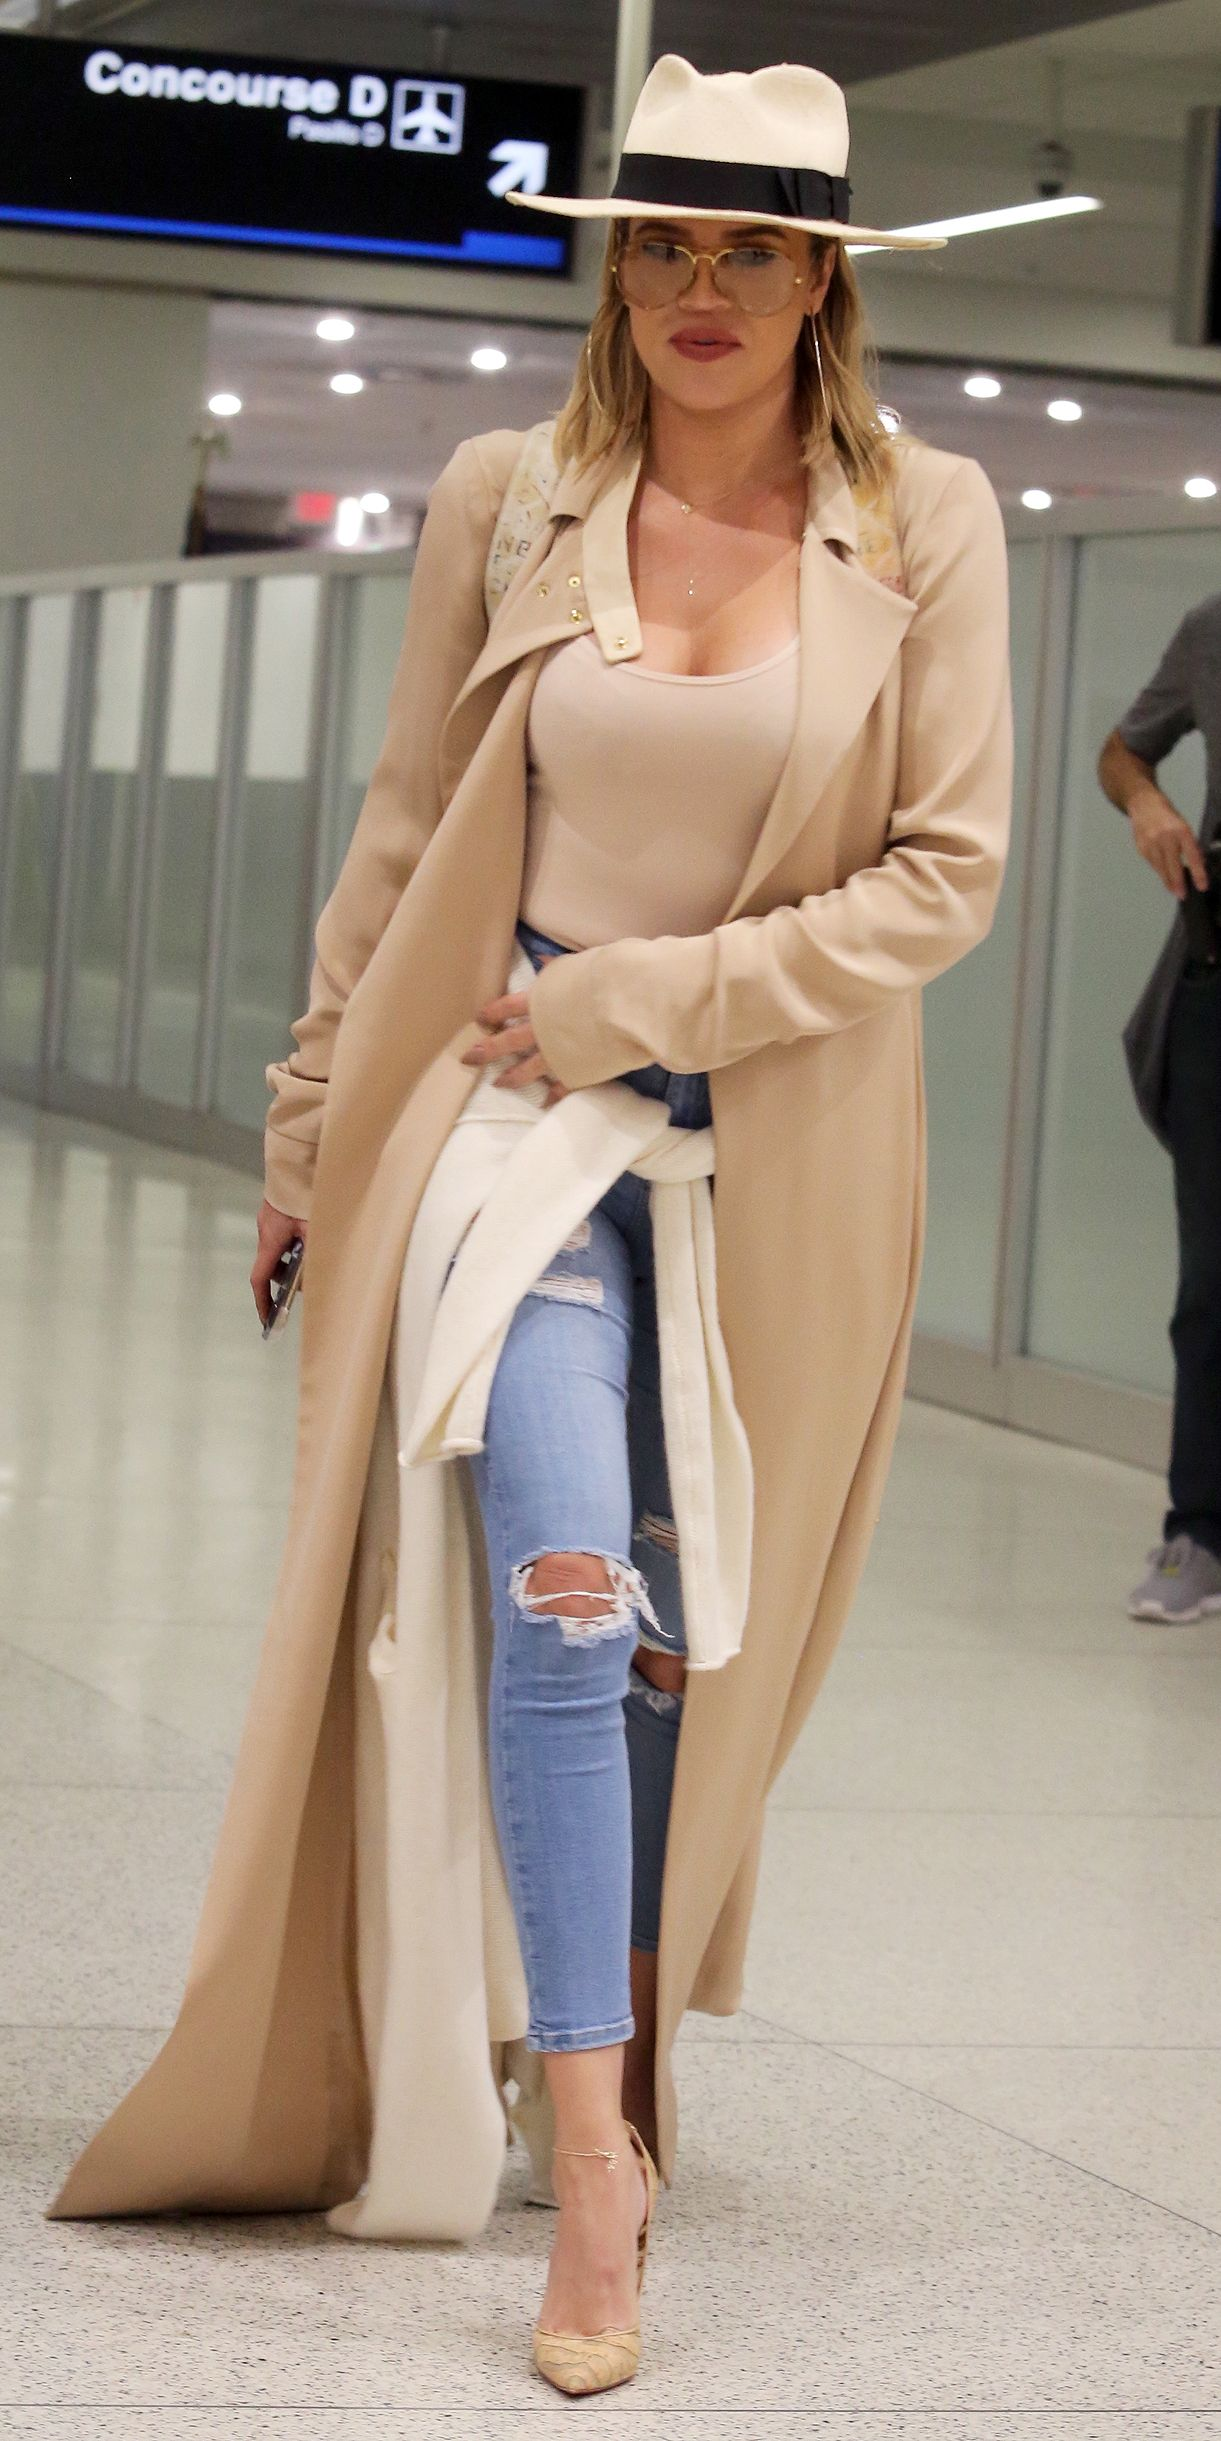 daf7ae16 Khloé Kardashian and Her Nude Bodysuit Turn Heads at the Airport ...